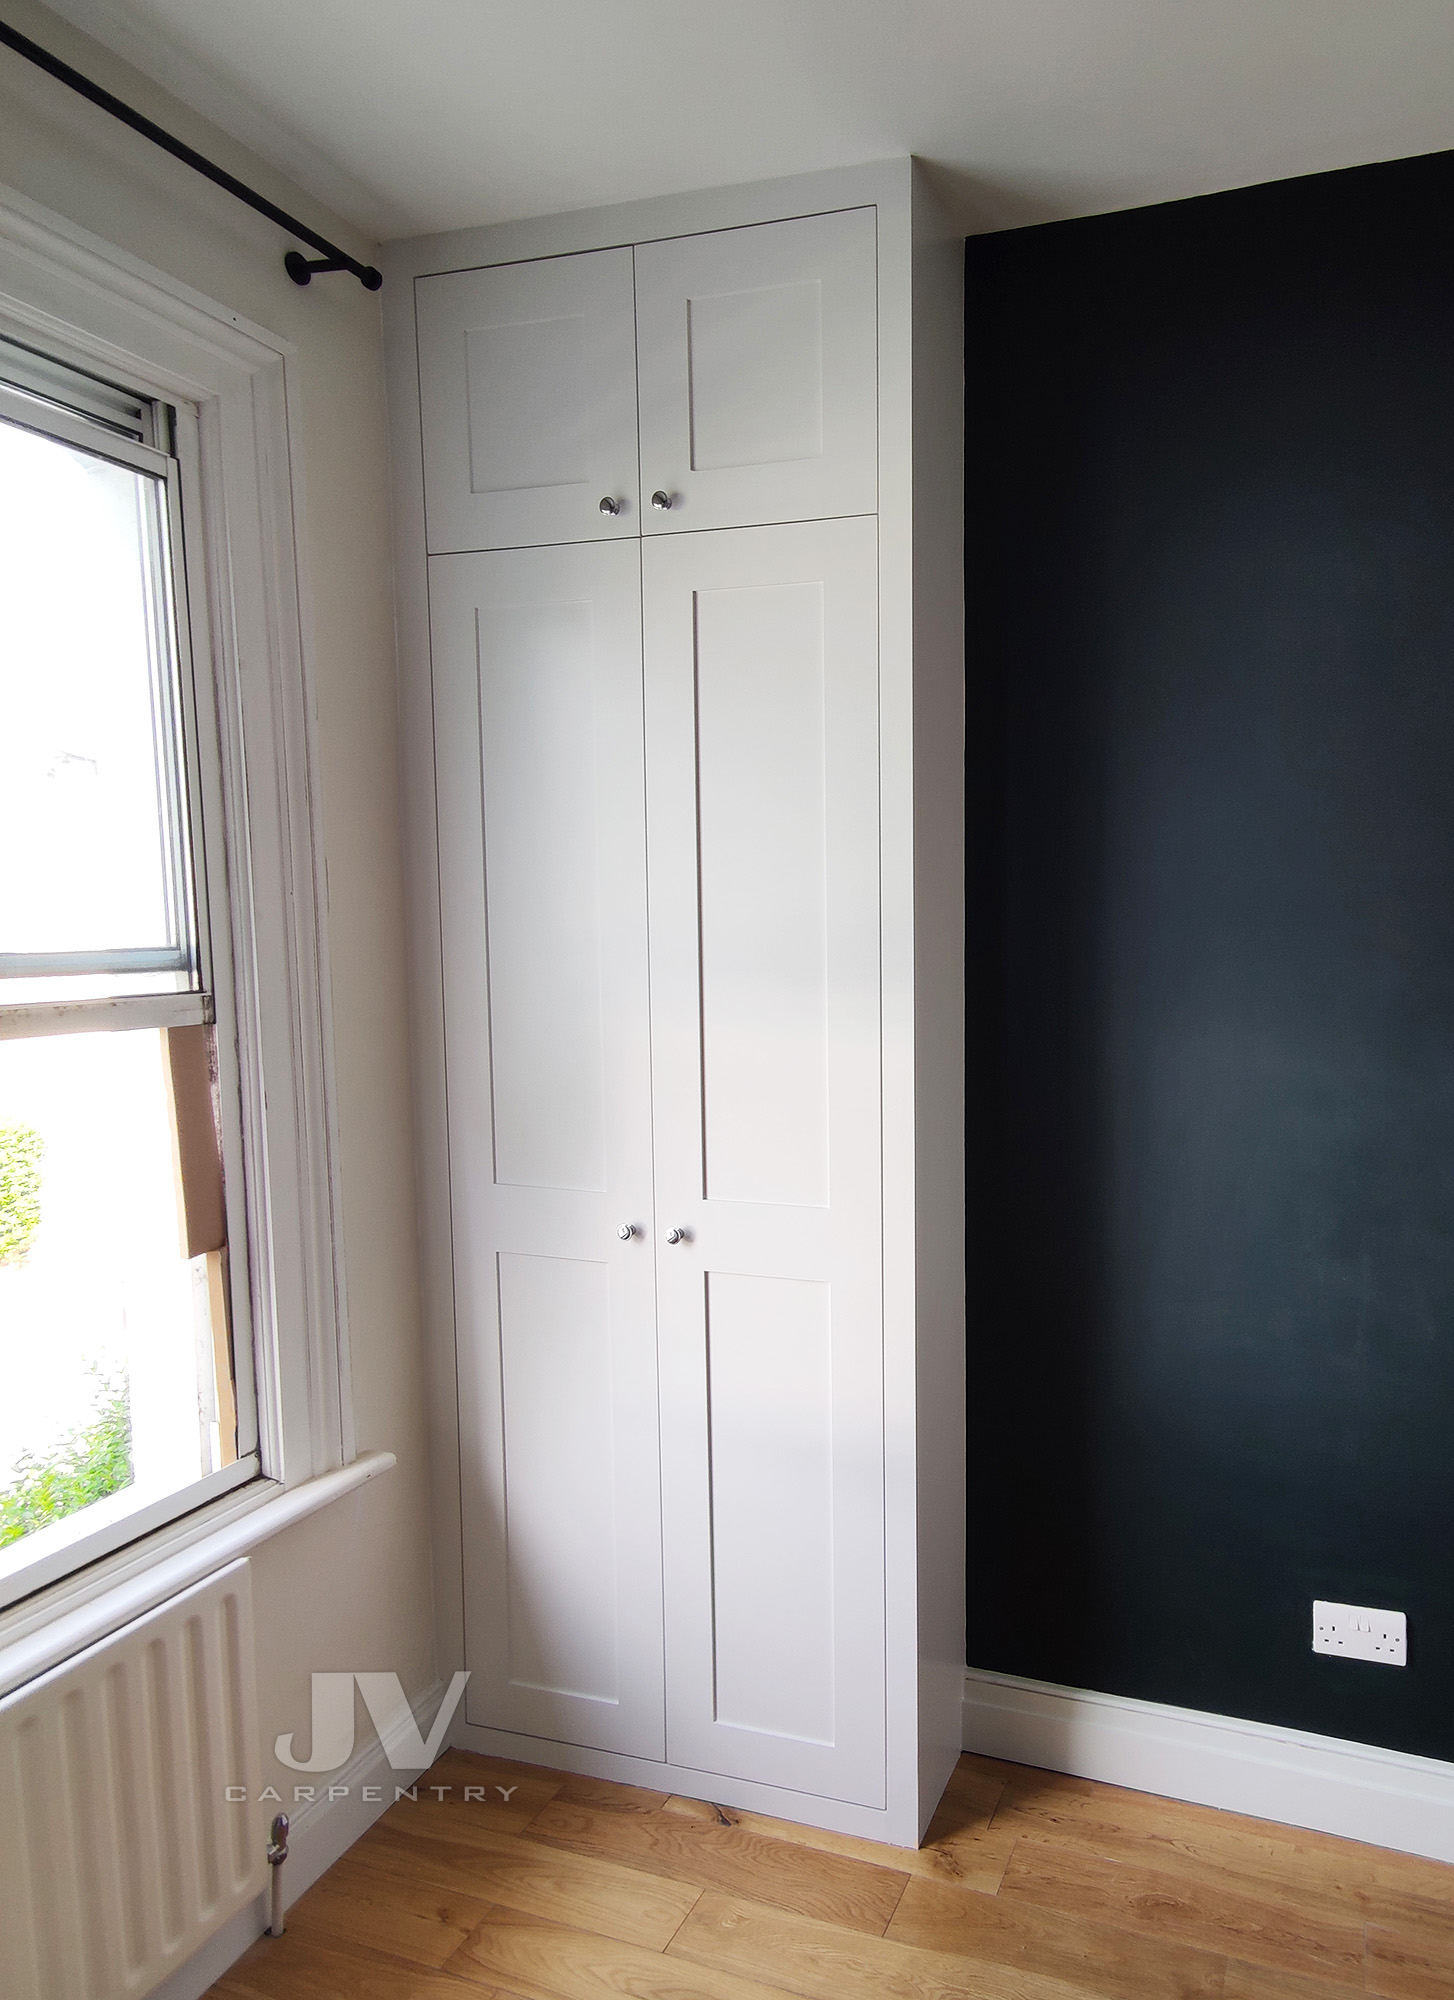 fitted wardrobe in an alcove by the window